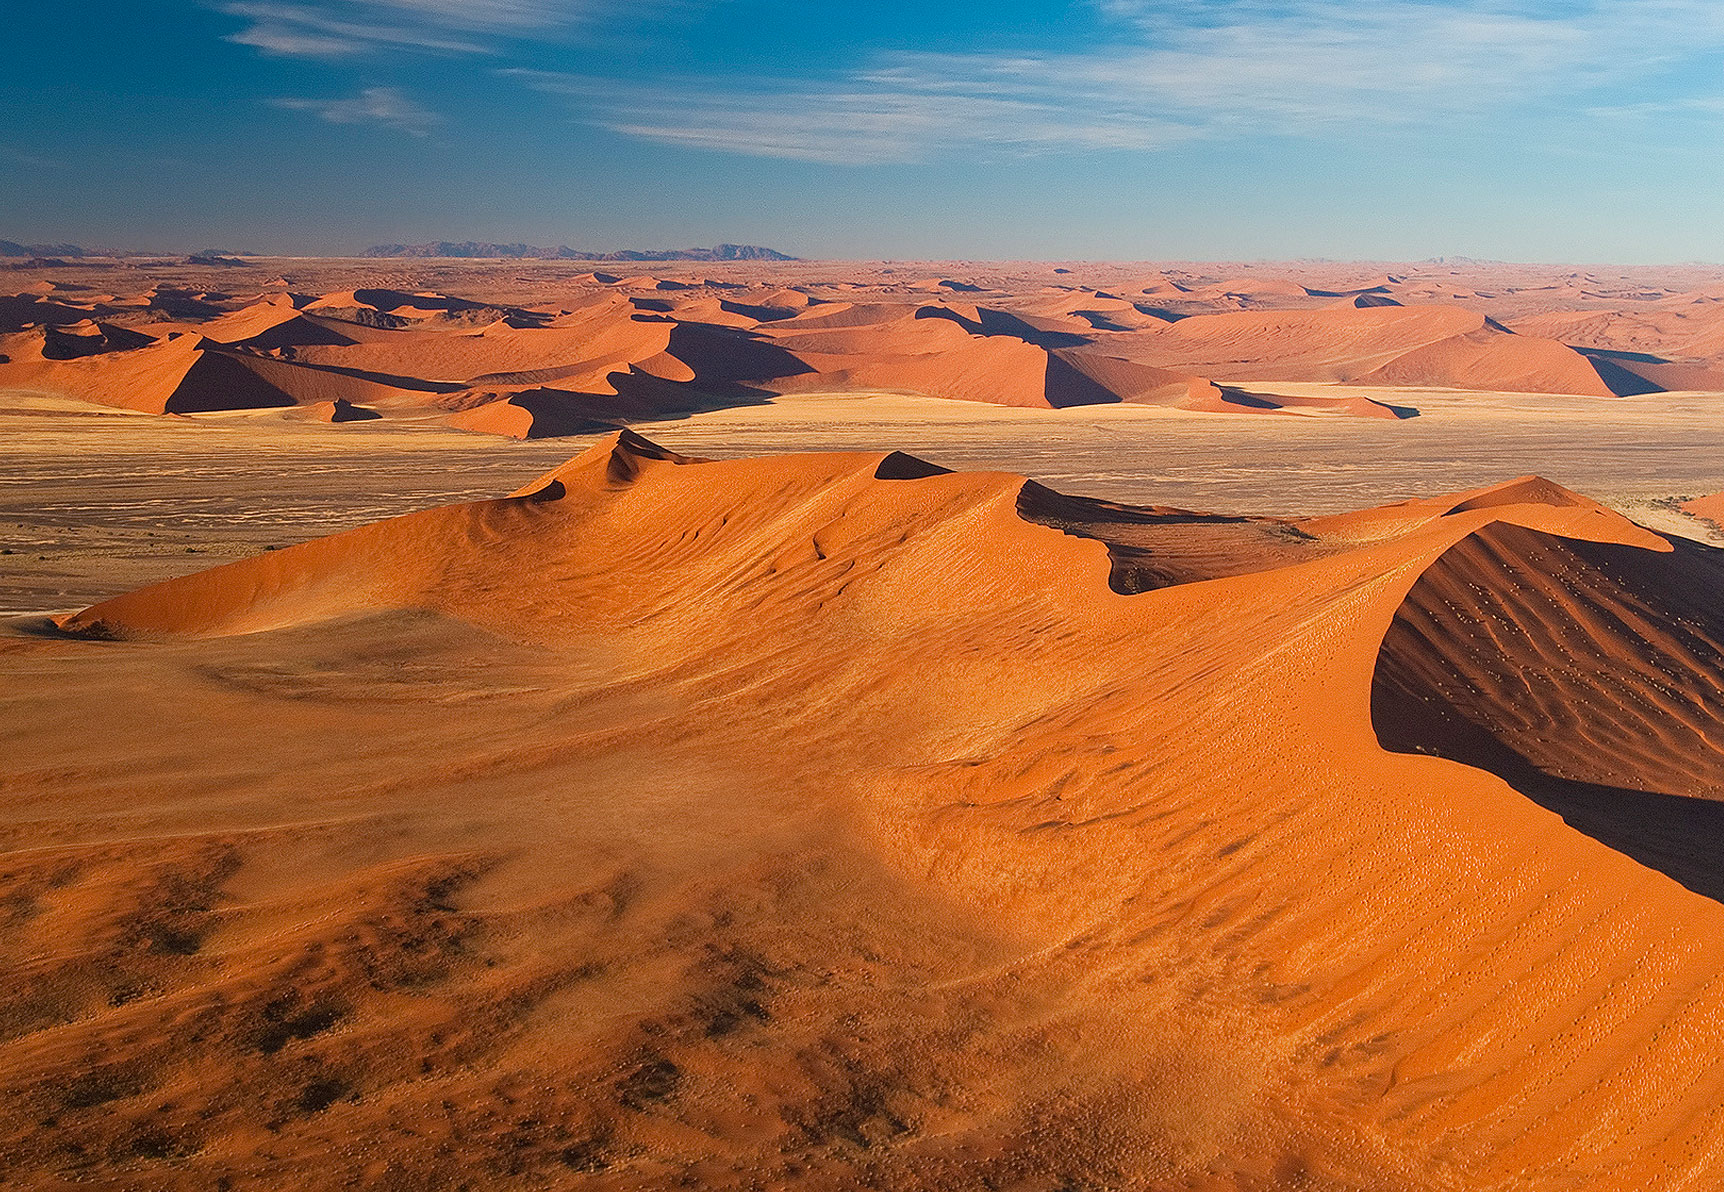 The 10 Best Places to Visit in Namibia inline image 5bfcf0c45b5e7